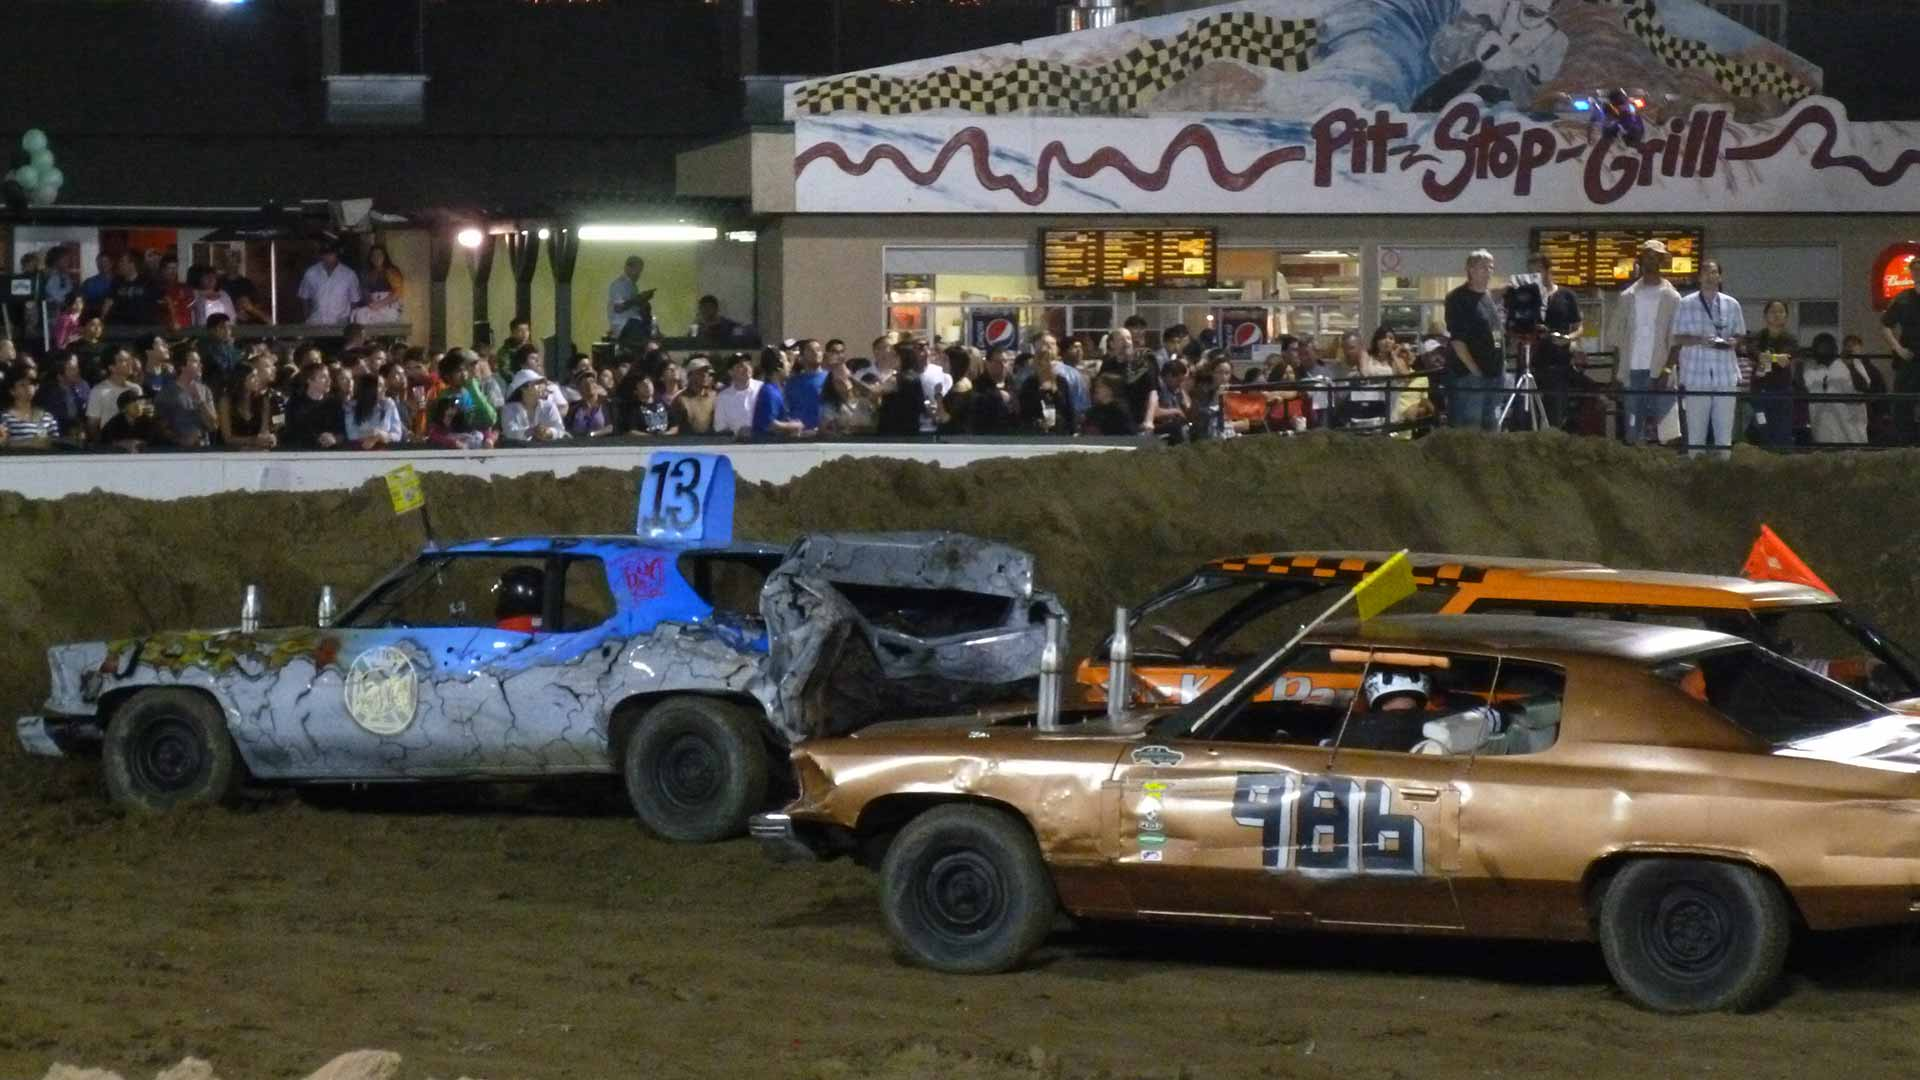 cars at the Demolition Derby